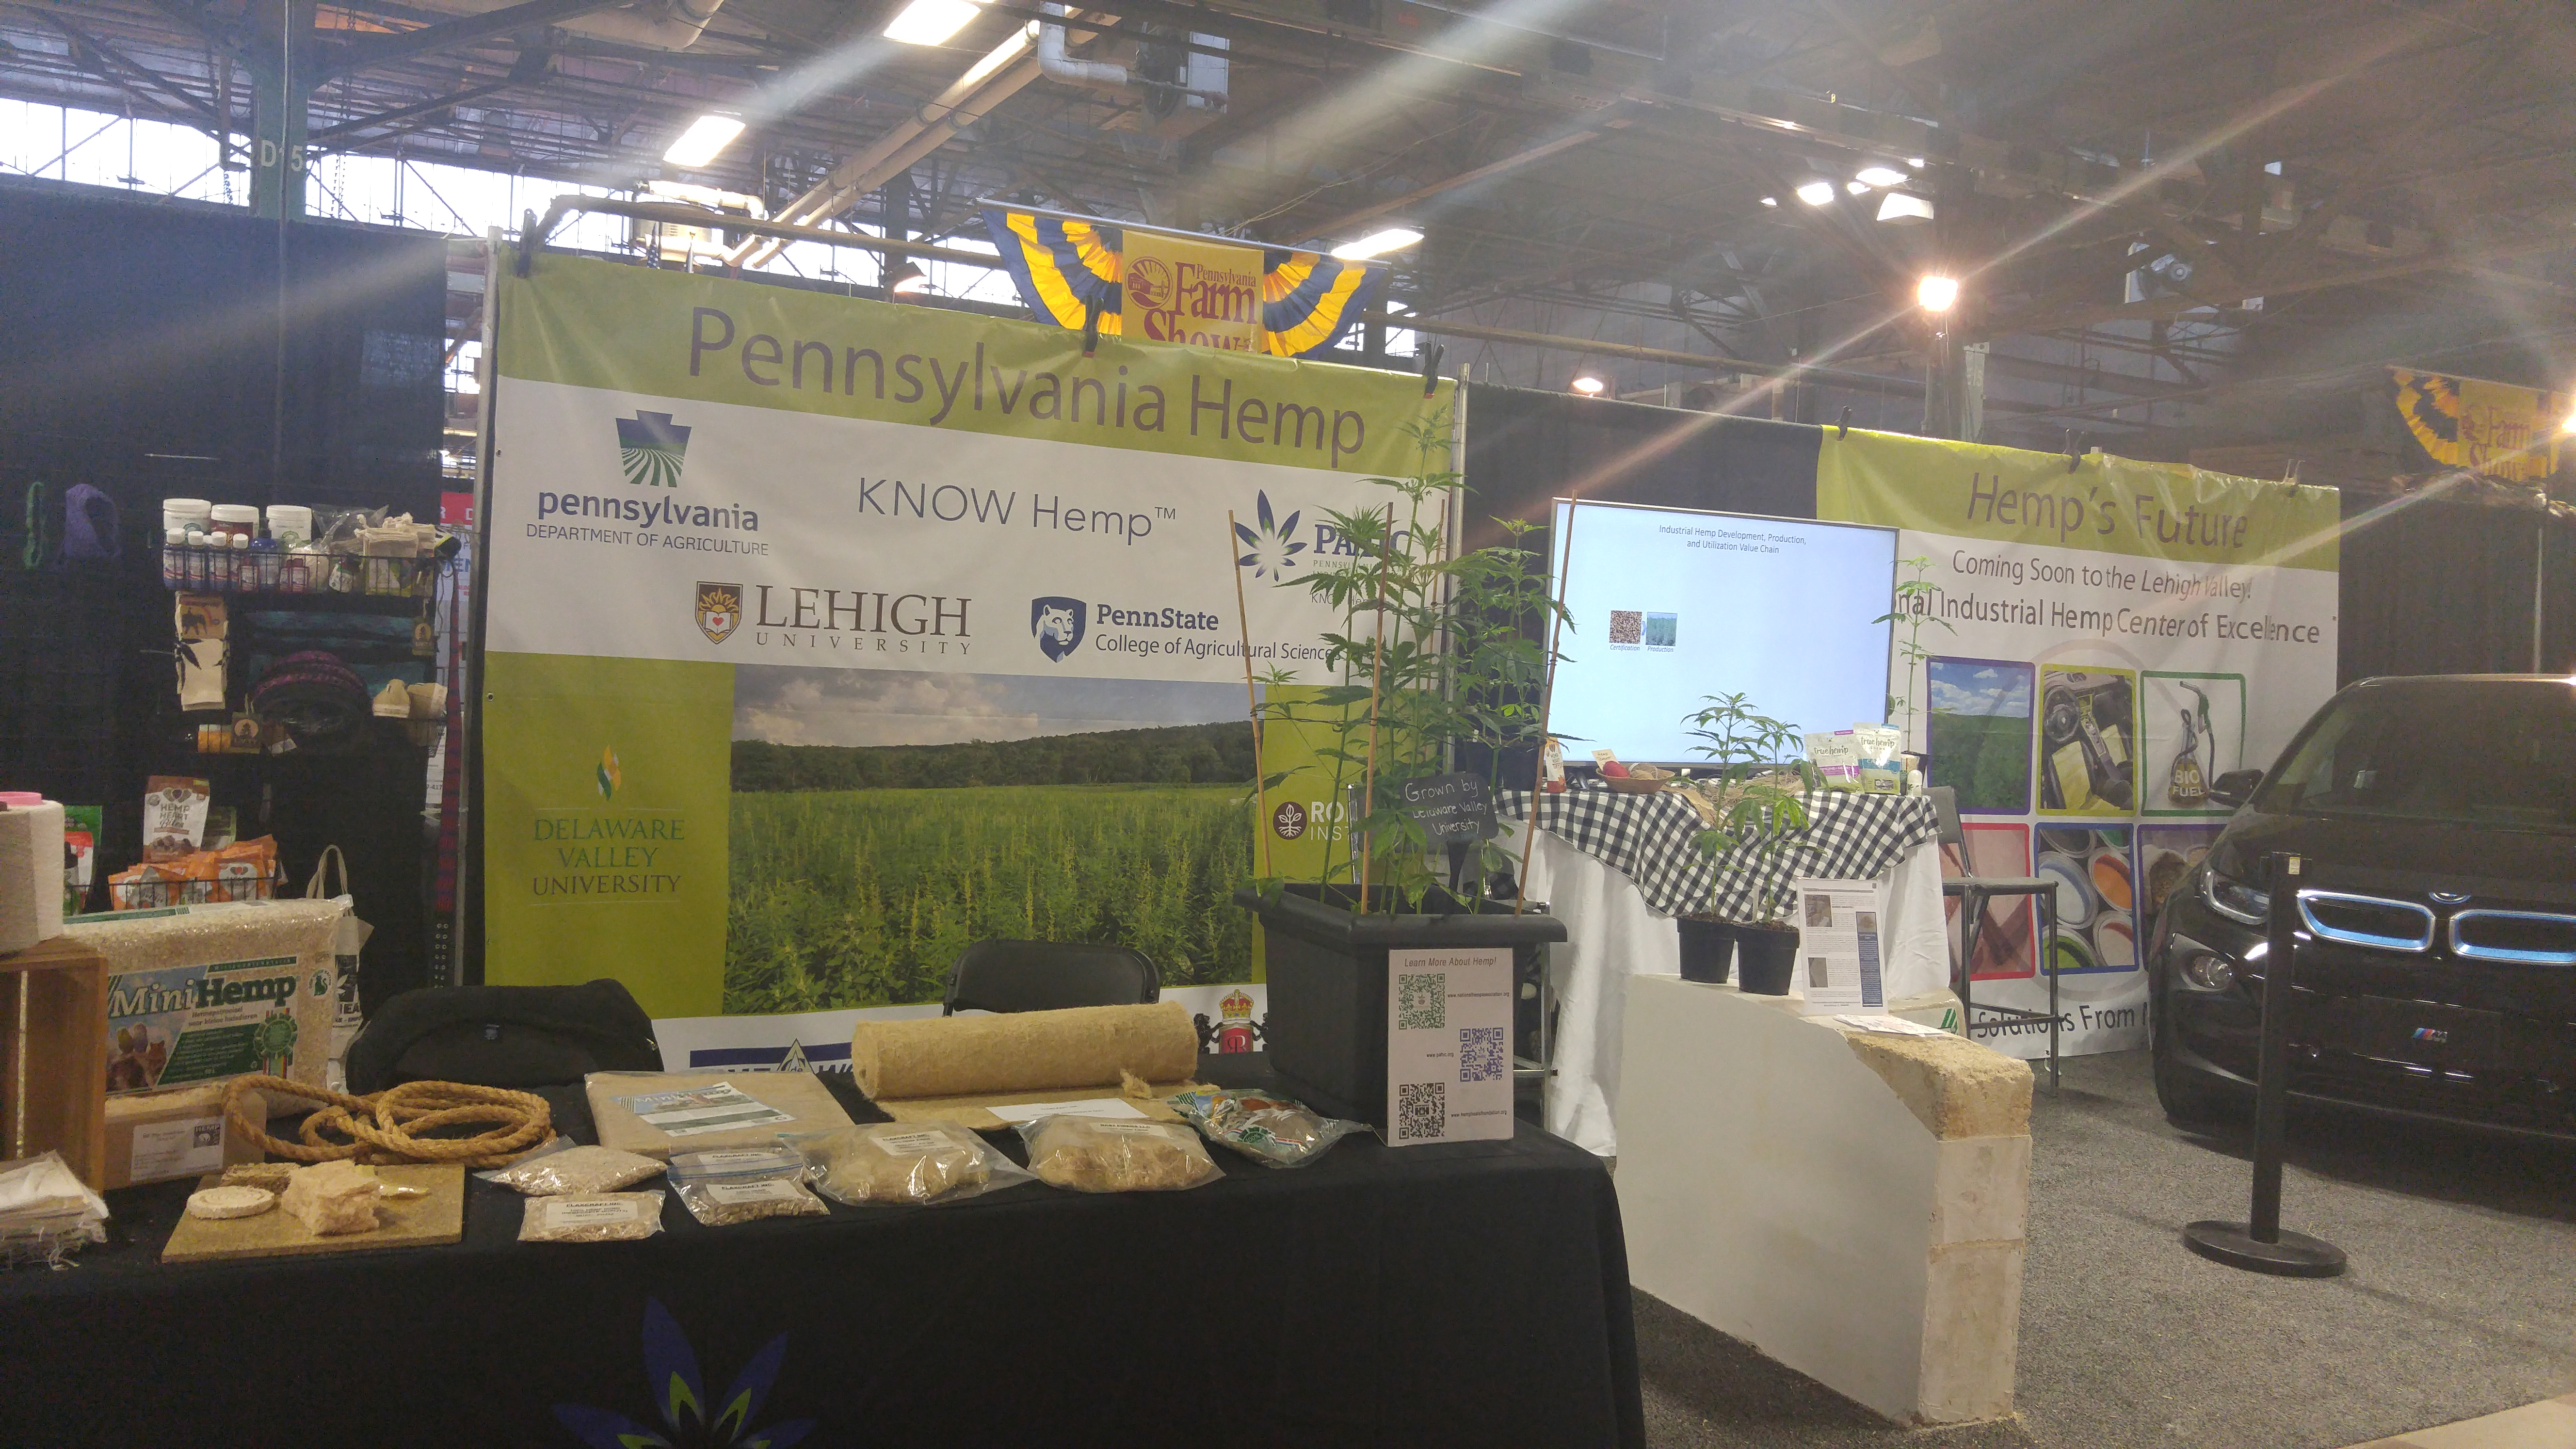 PAHIC – Pennsylvania Hemp Industry Council